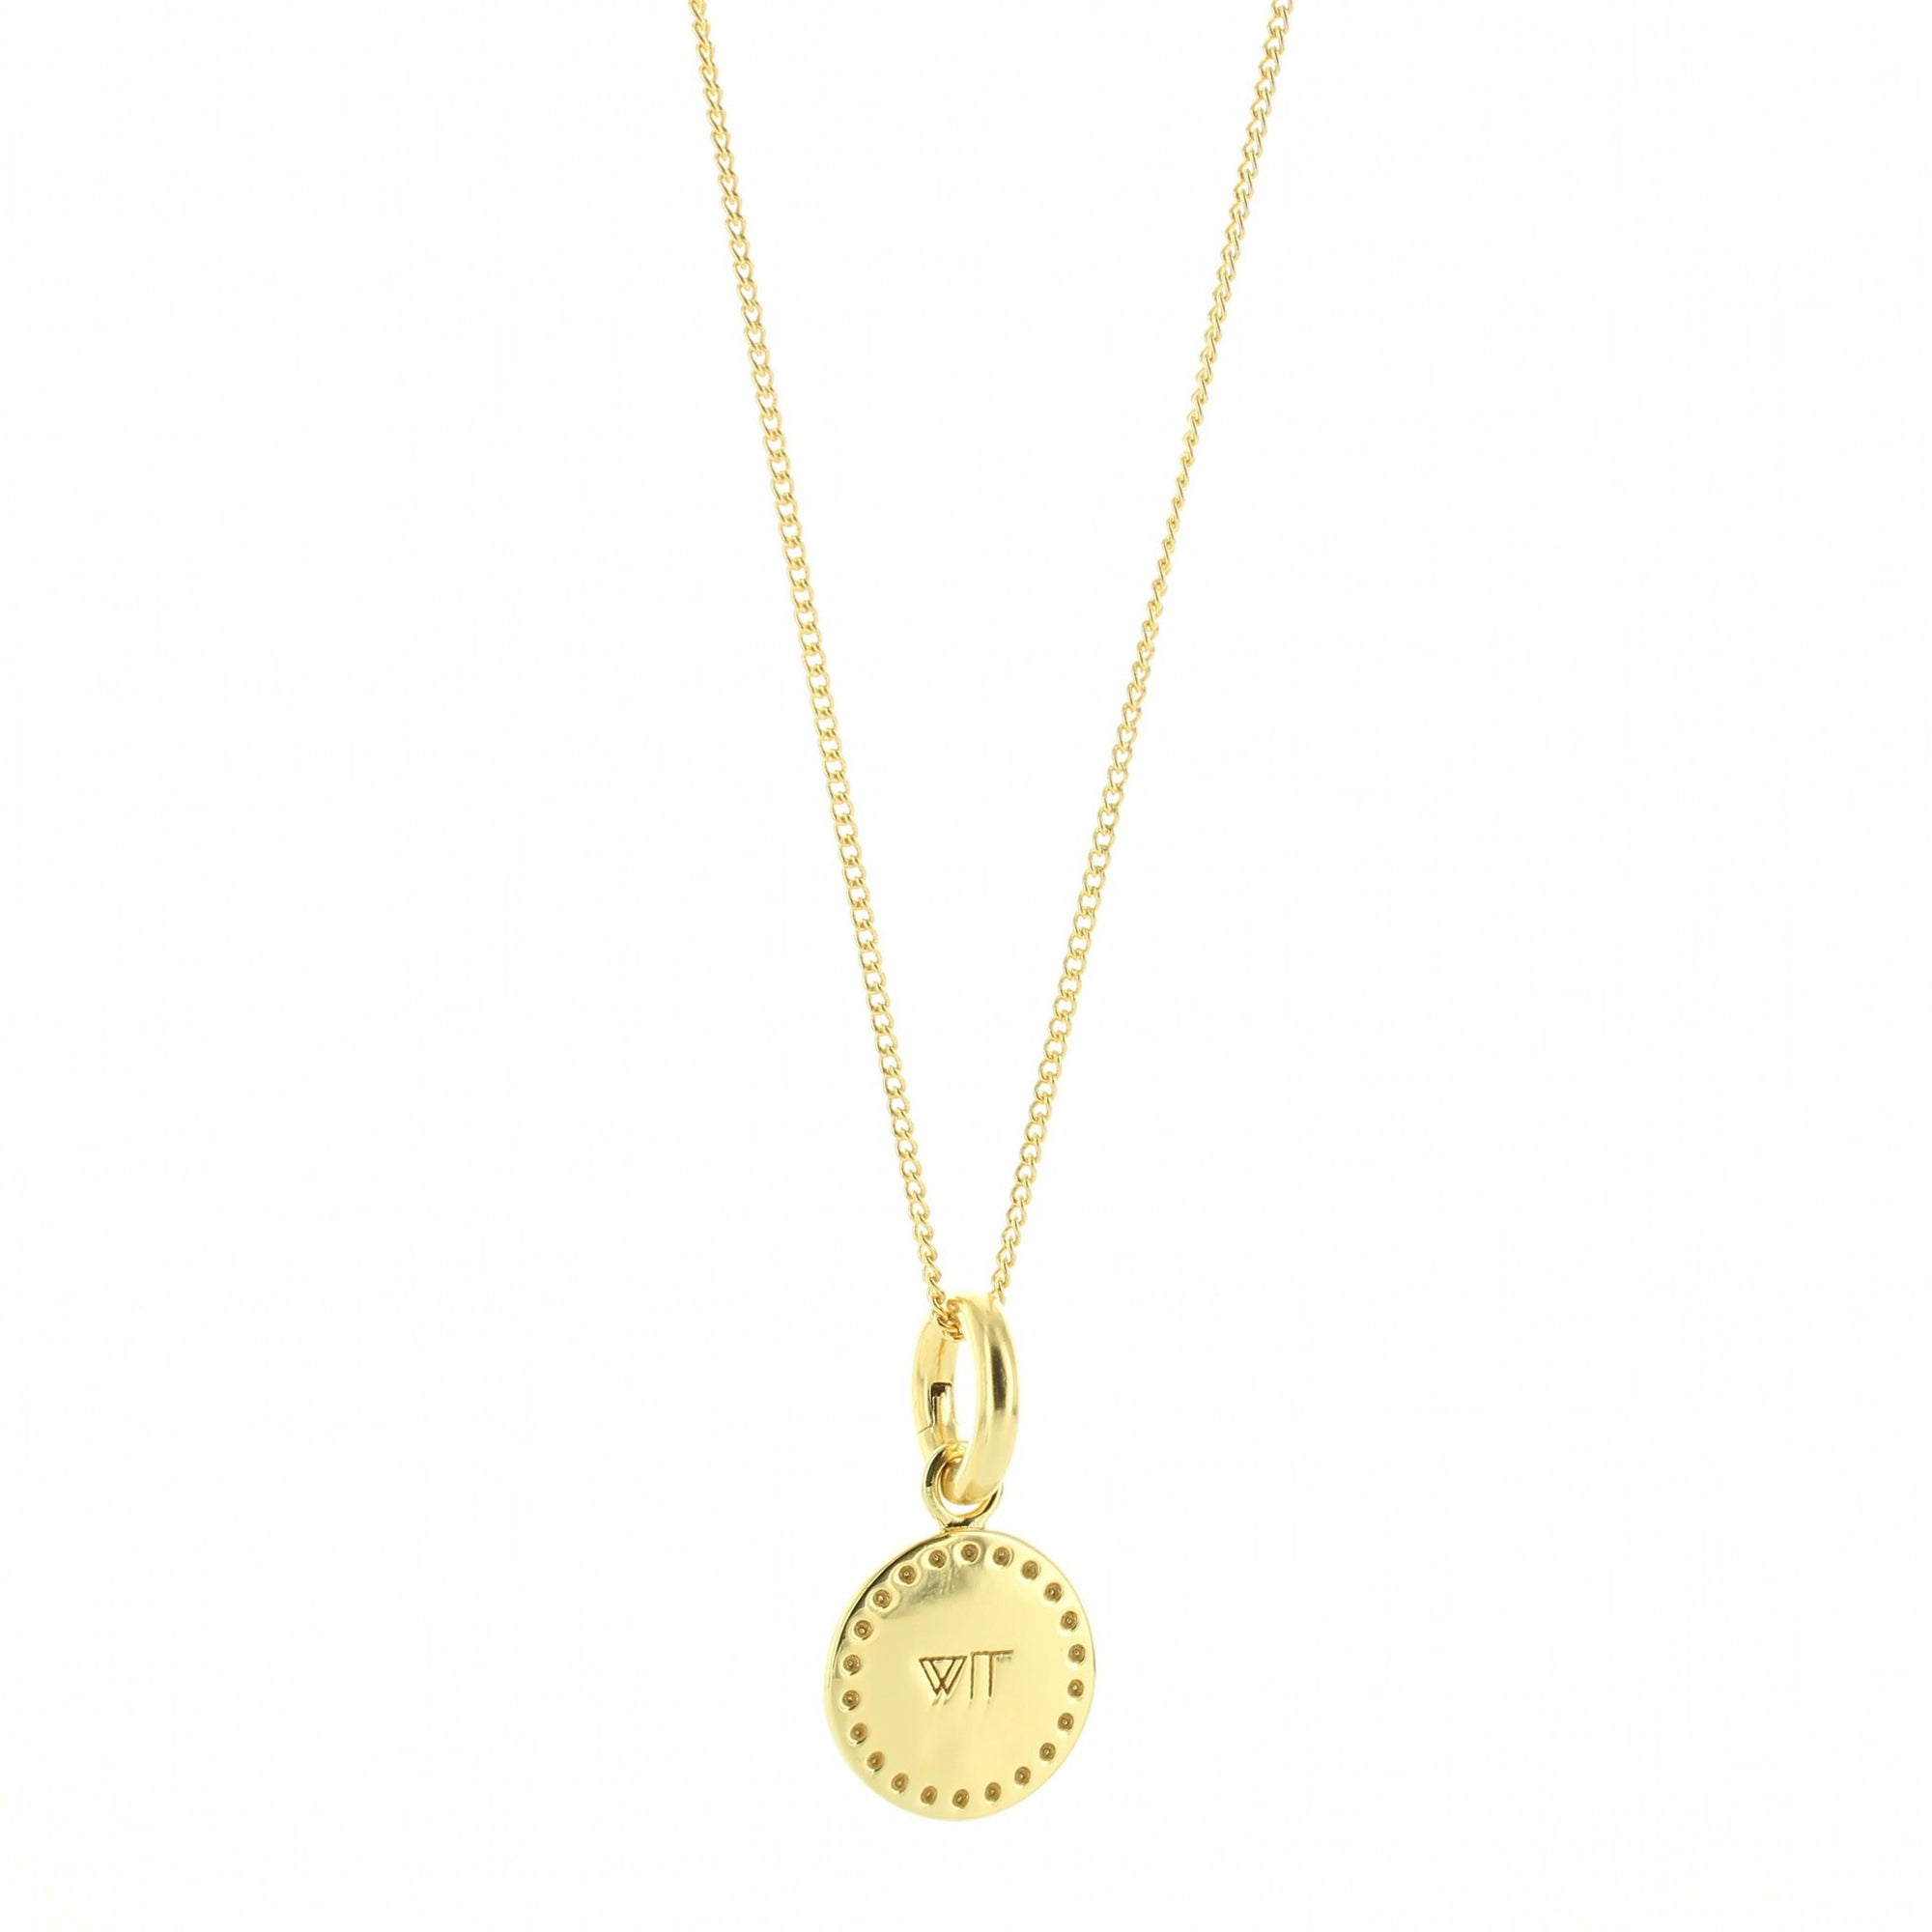 WIT FLOATING CHARM PENDANT ALL METAL GOLD